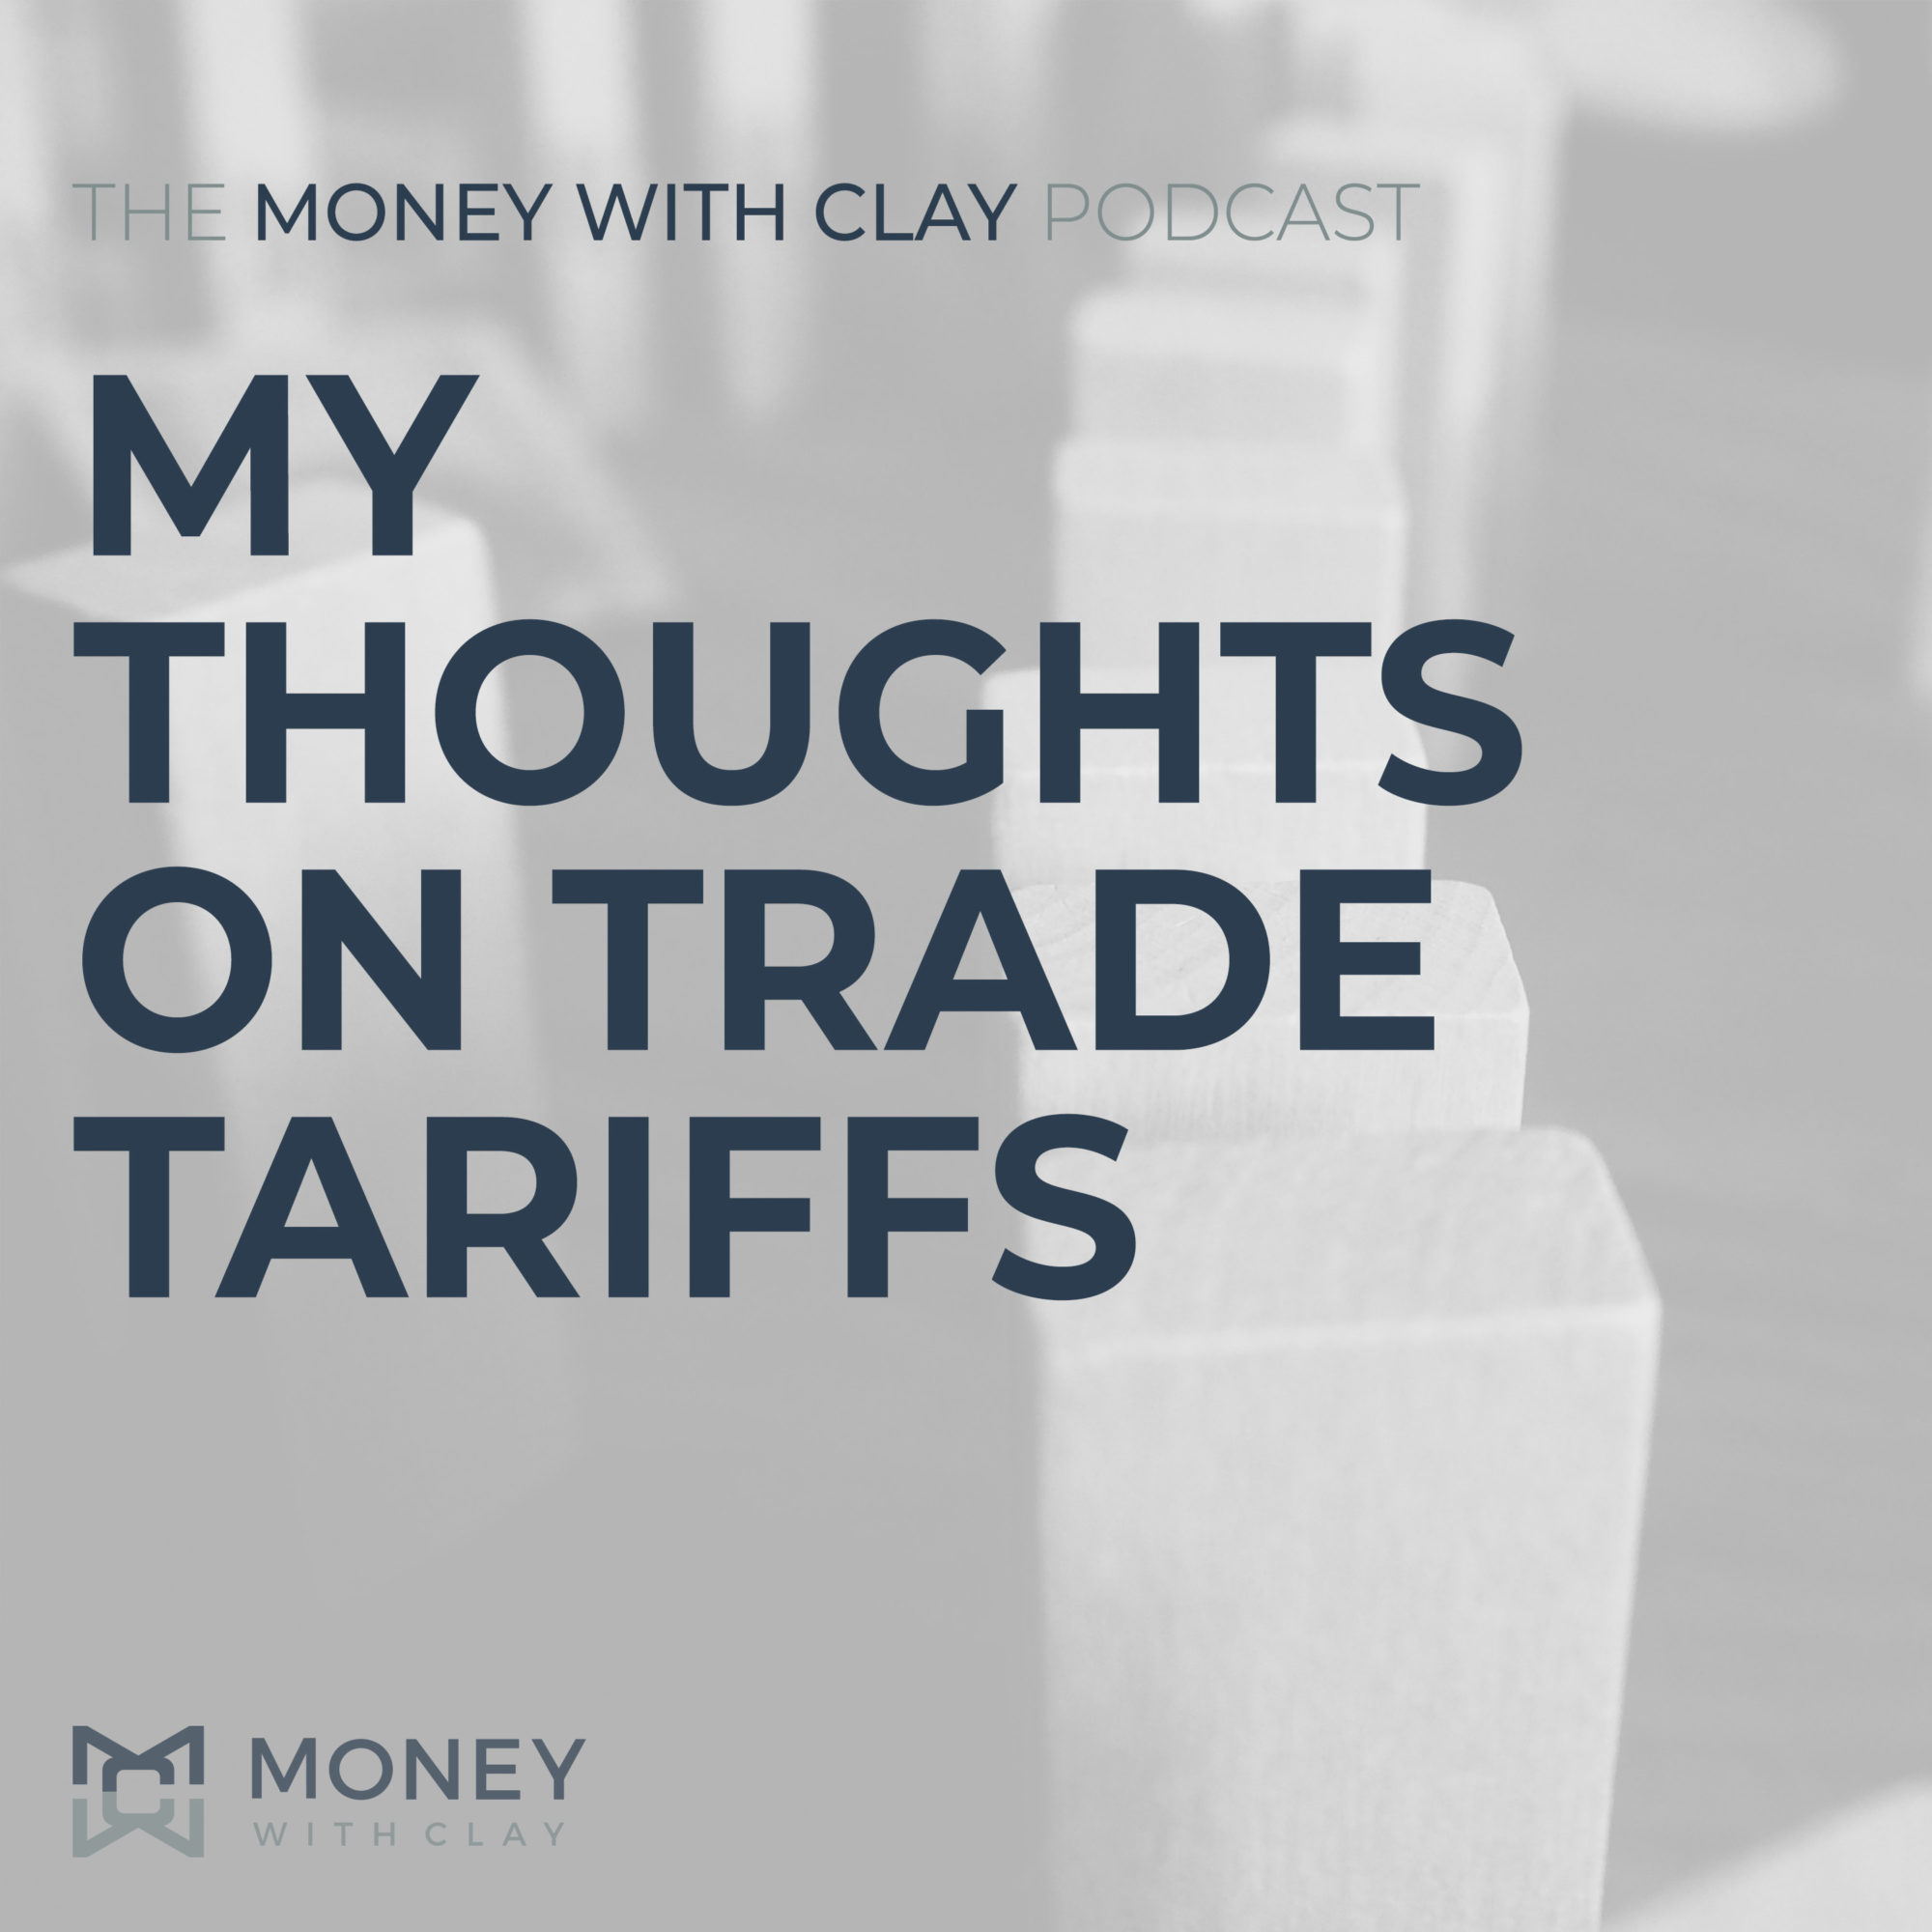 My Thoughts on Trade Tariffs